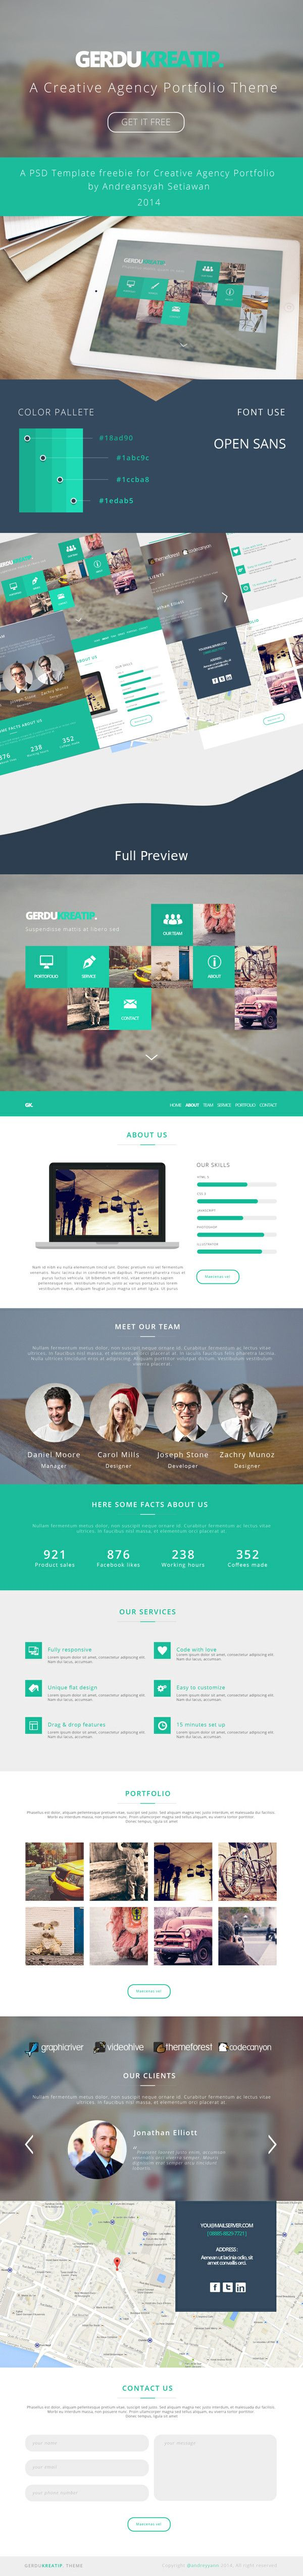 Nice Agency Portfolio Theme Template PSD. A flat style retina-ready website template designed by Andreansyah Setiawan. The PSD file is fully-editable so you can easily change colors fonts and styles according to your needs. Have fun with it and don't forget to spread the word! #flat #freepsd #freebie #freemium #graphicburger #page #premium #resource #single #template Check more at http://psdfinder.com/free-psd/agency-portfolio-theme-template-psd